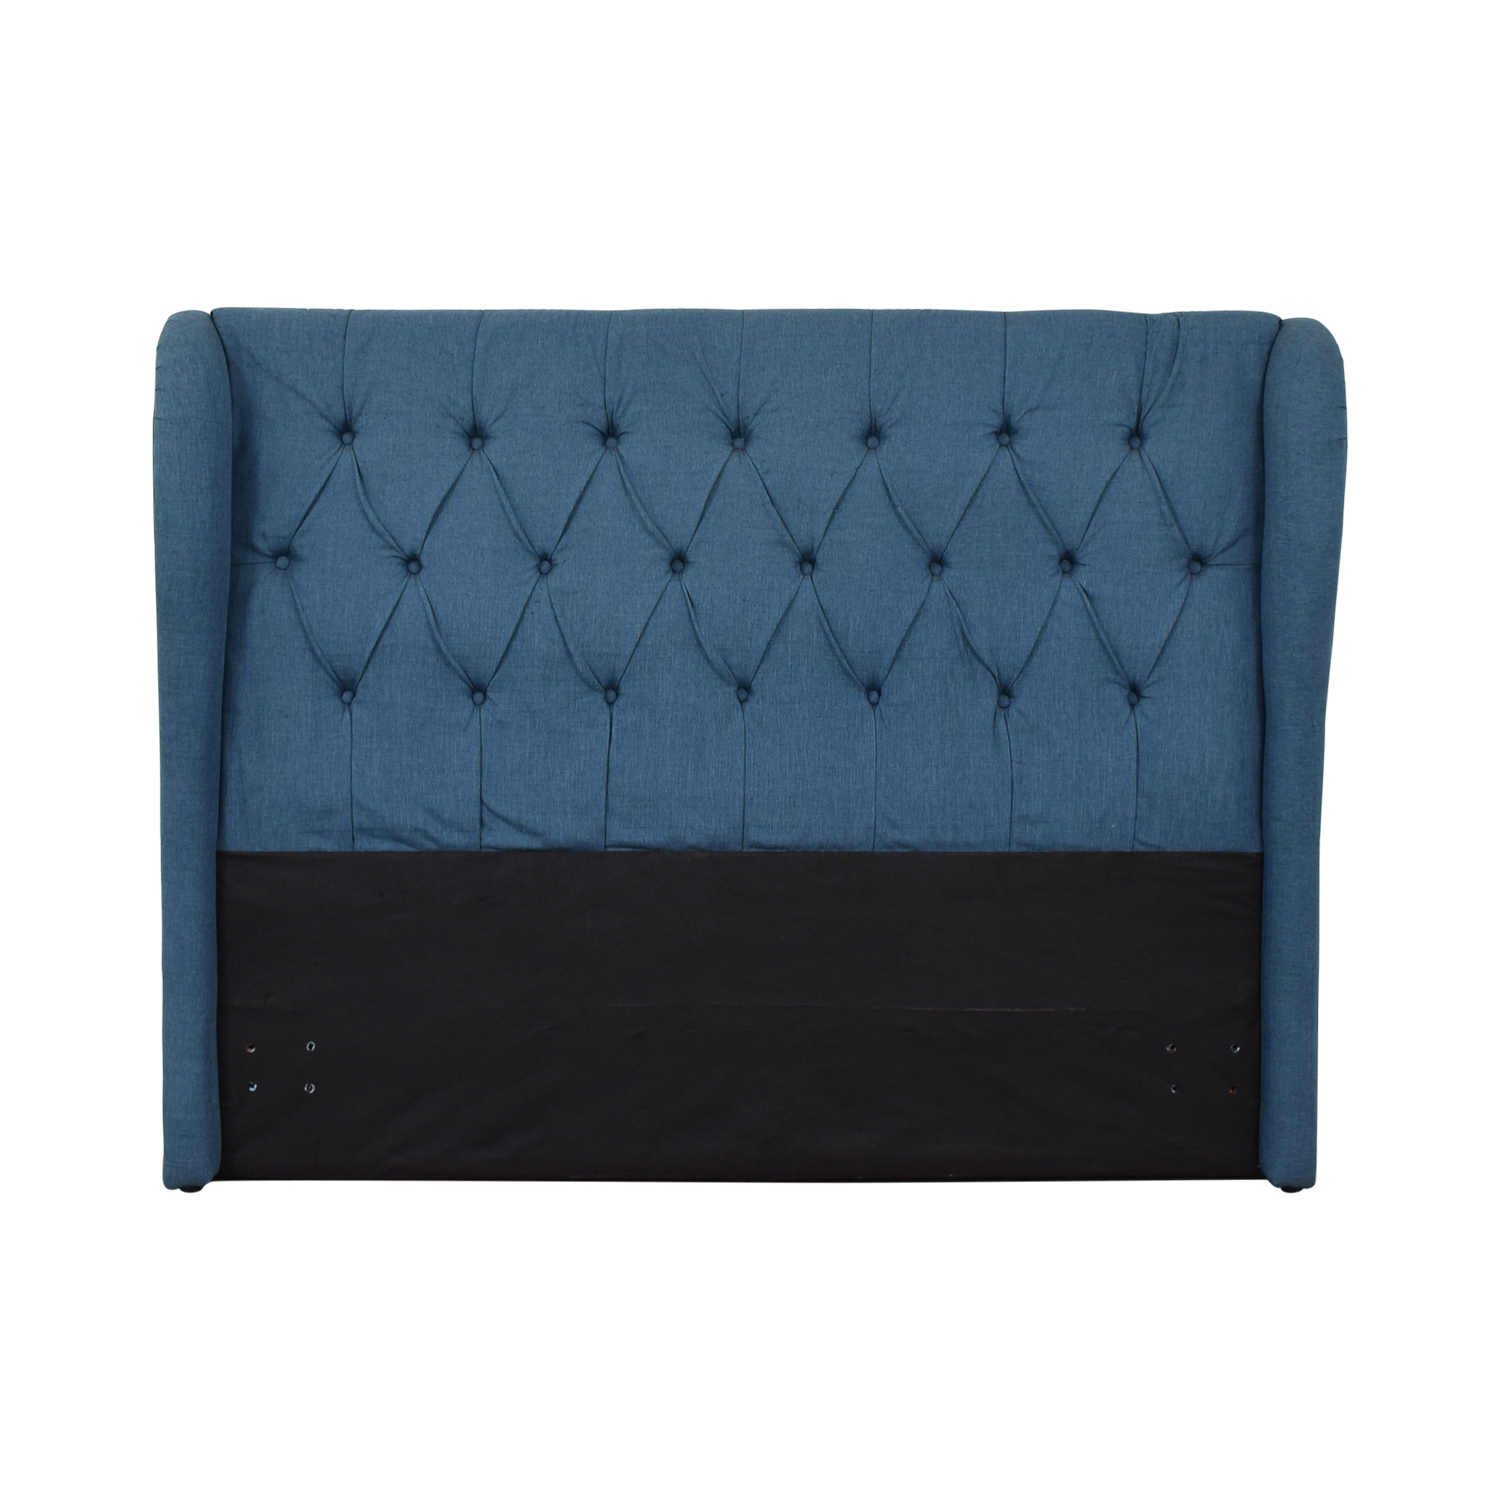 Blue Upolstered Tufted Queen Headboard second hand